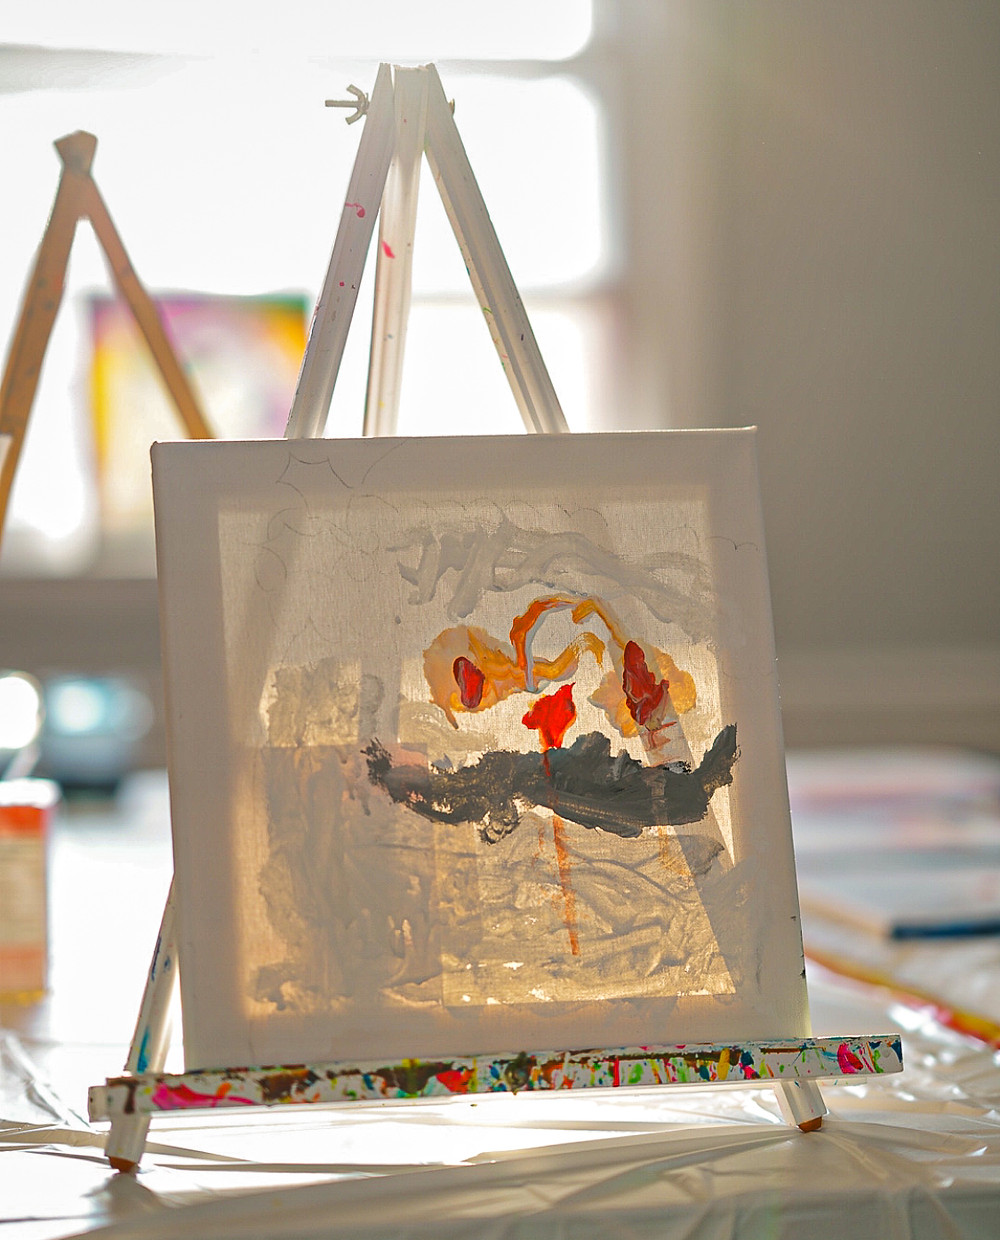 photo of a canvas painted by a 3 year old boy